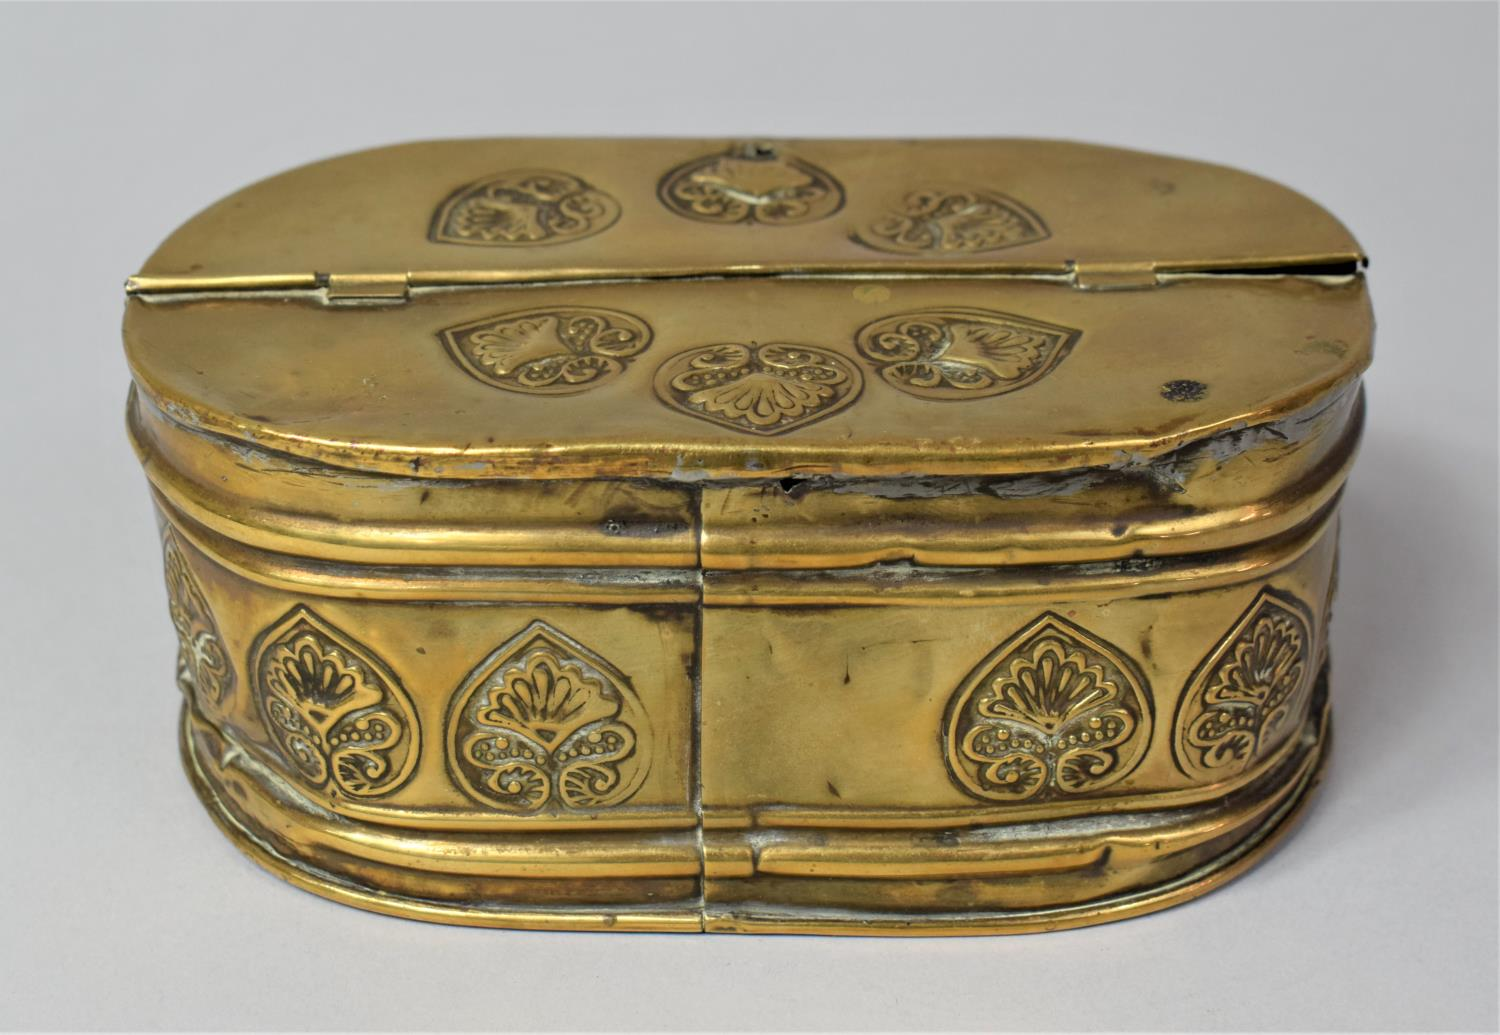 A 19th Century Dutch Brass Oval Two Division Tobacco Box with Hinged Lid, 15.5cm Long - Image 3 of 5